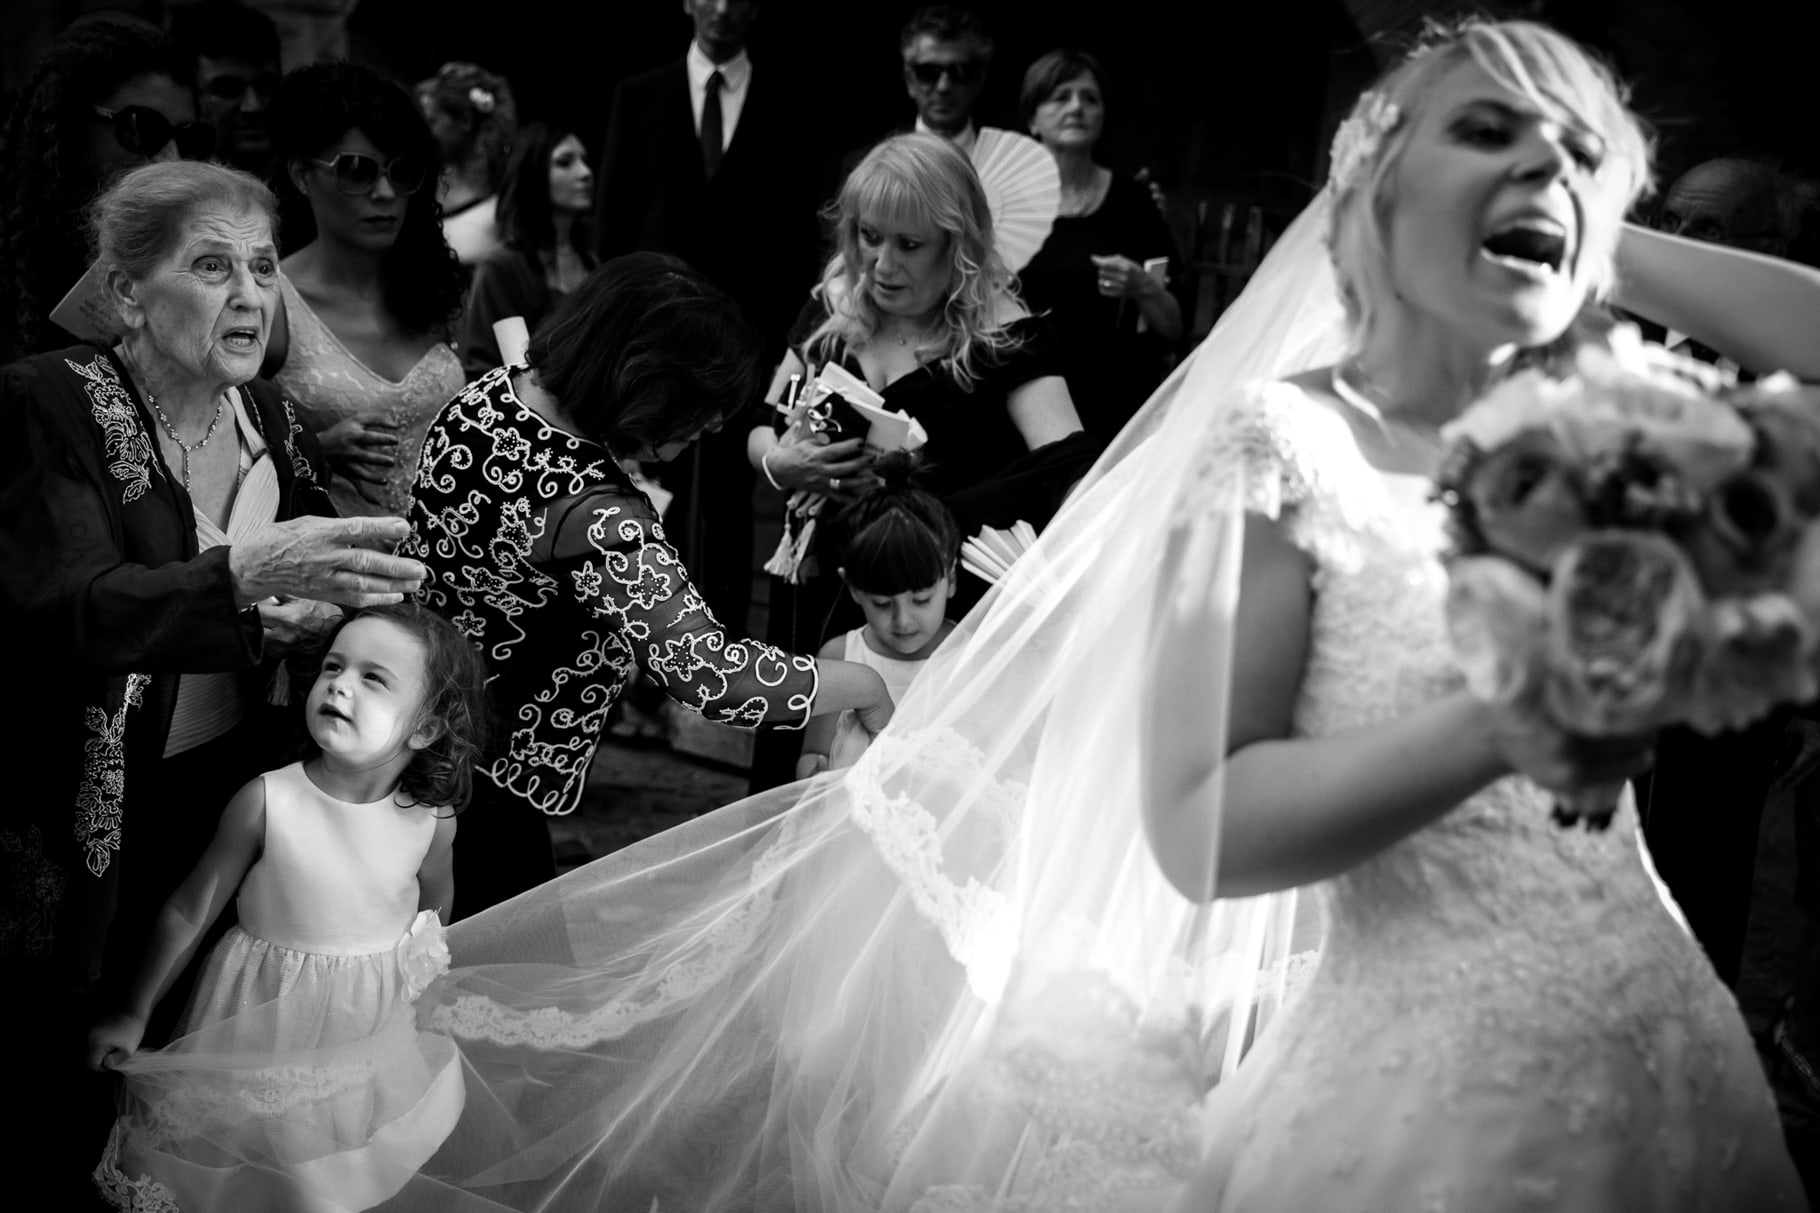 funny moment of a kid pulling the bride veil after the ceremony in a photo captured by villa miani wedding photographer